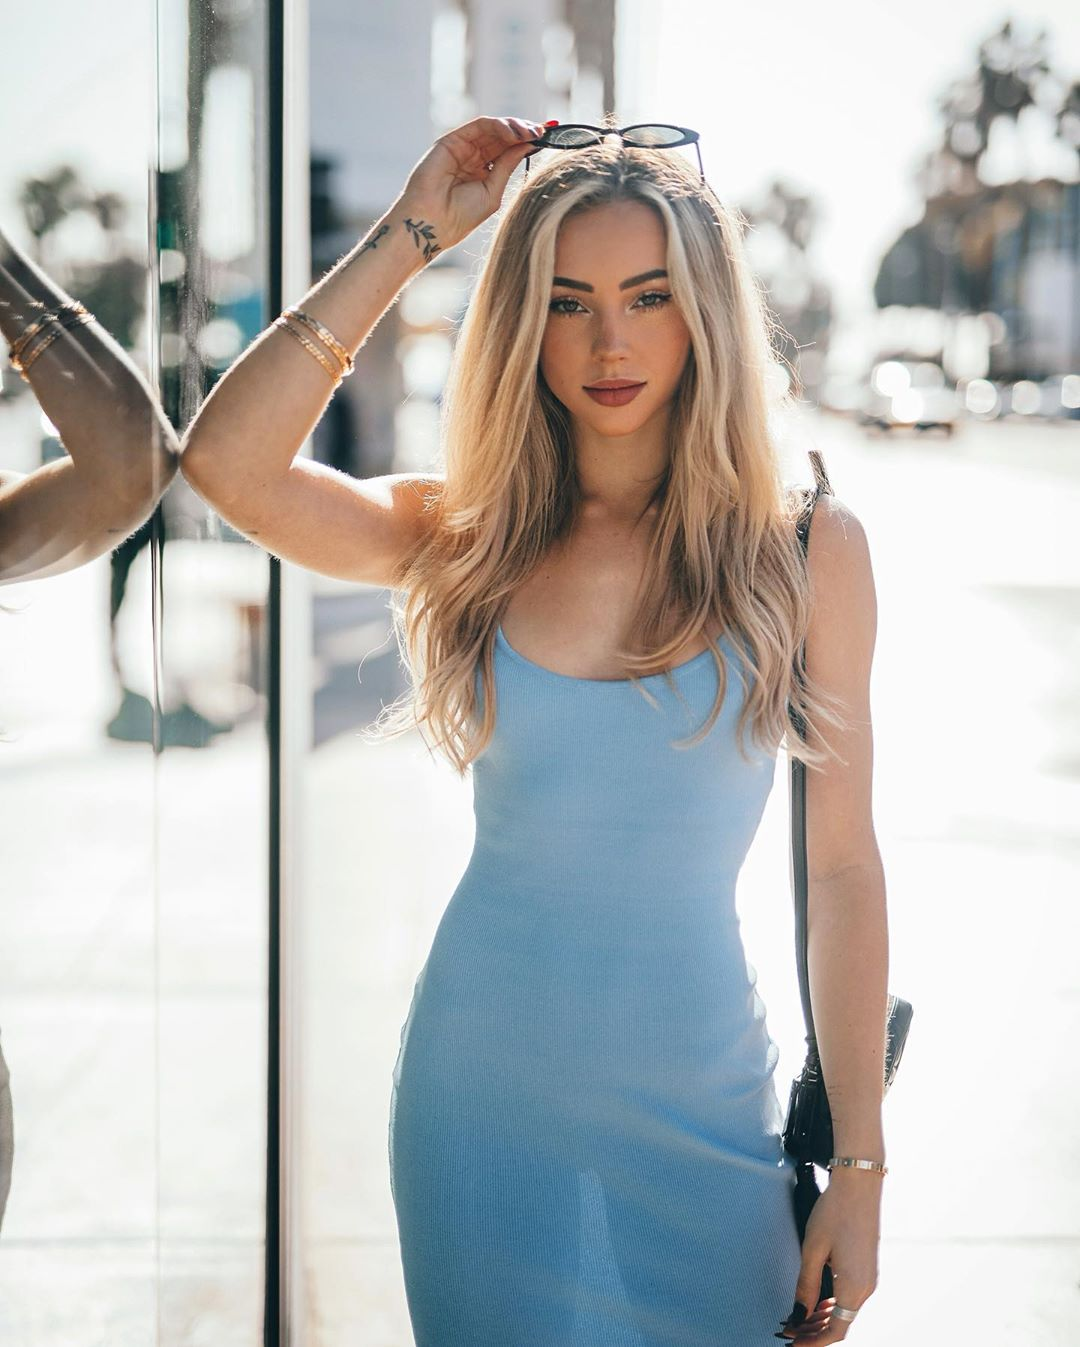 Charly Jordan Biography Wiki Birthday Height, Weight Age Date of Birth Boyfriend Net Worth -Family Info